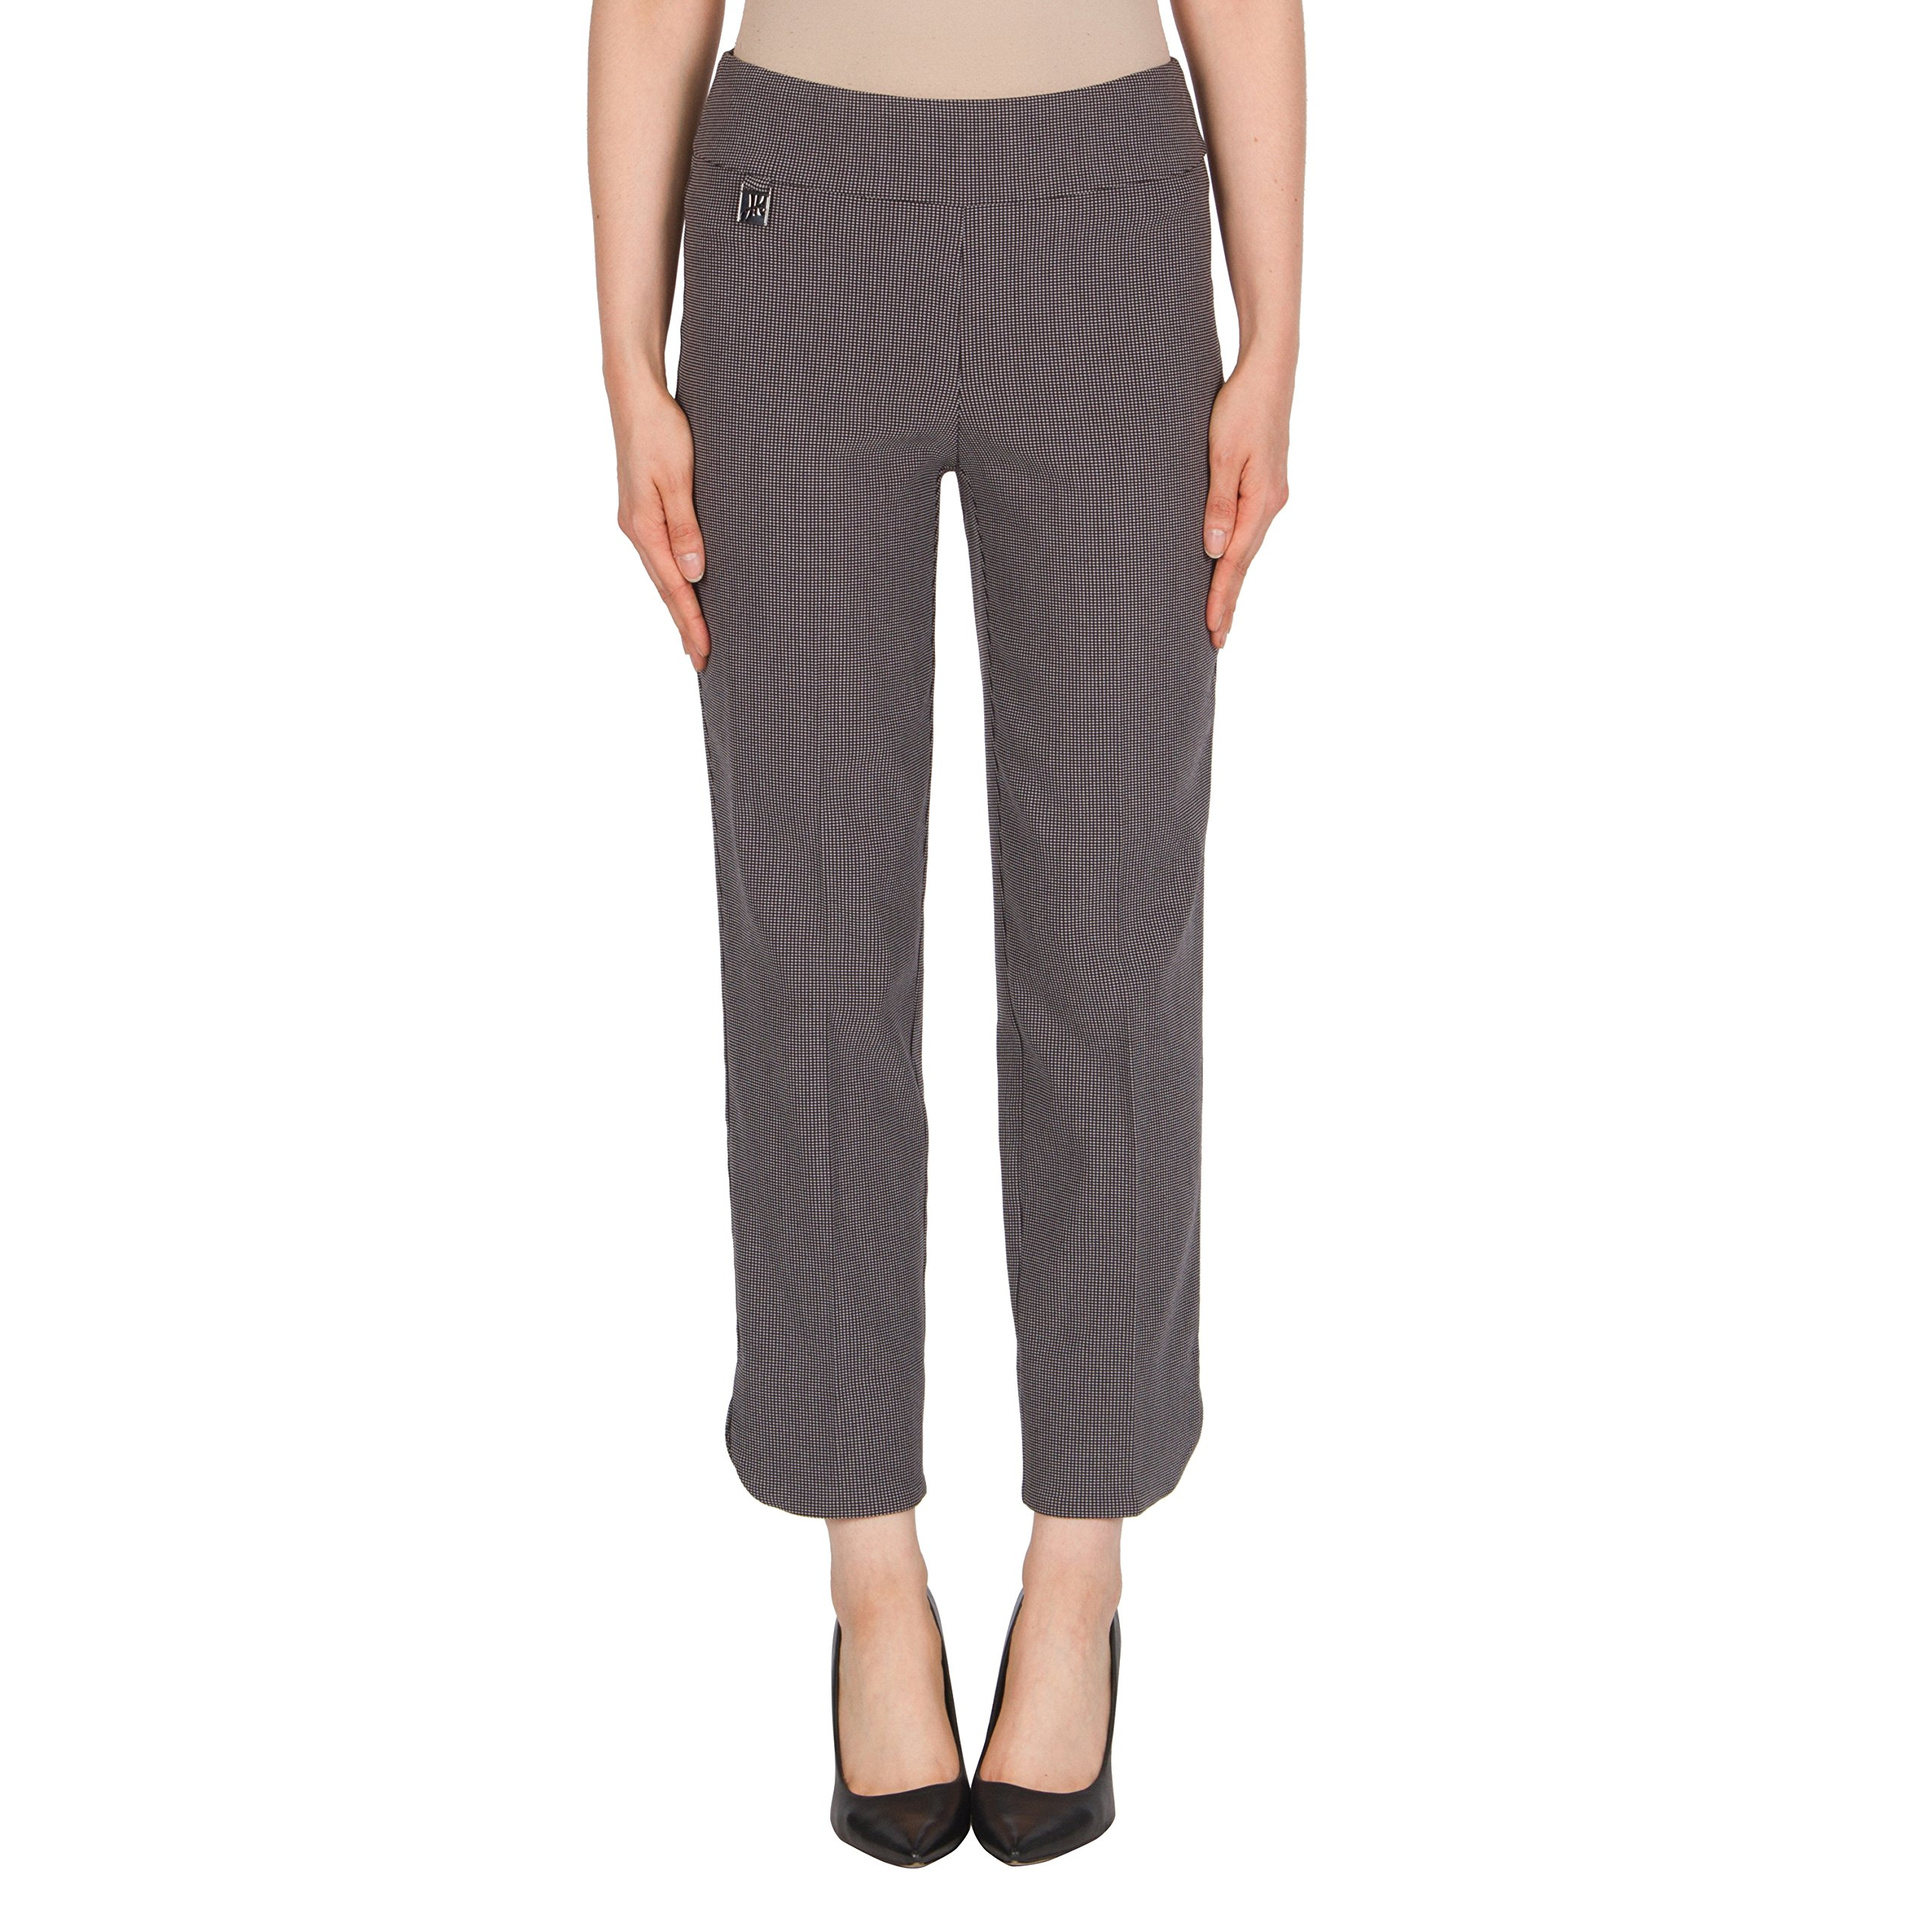 Joseph Ribkoff Micro-Dot Stretch Ankle Length Pant Style 174828 - Size 16 by Joseph Ribkoff